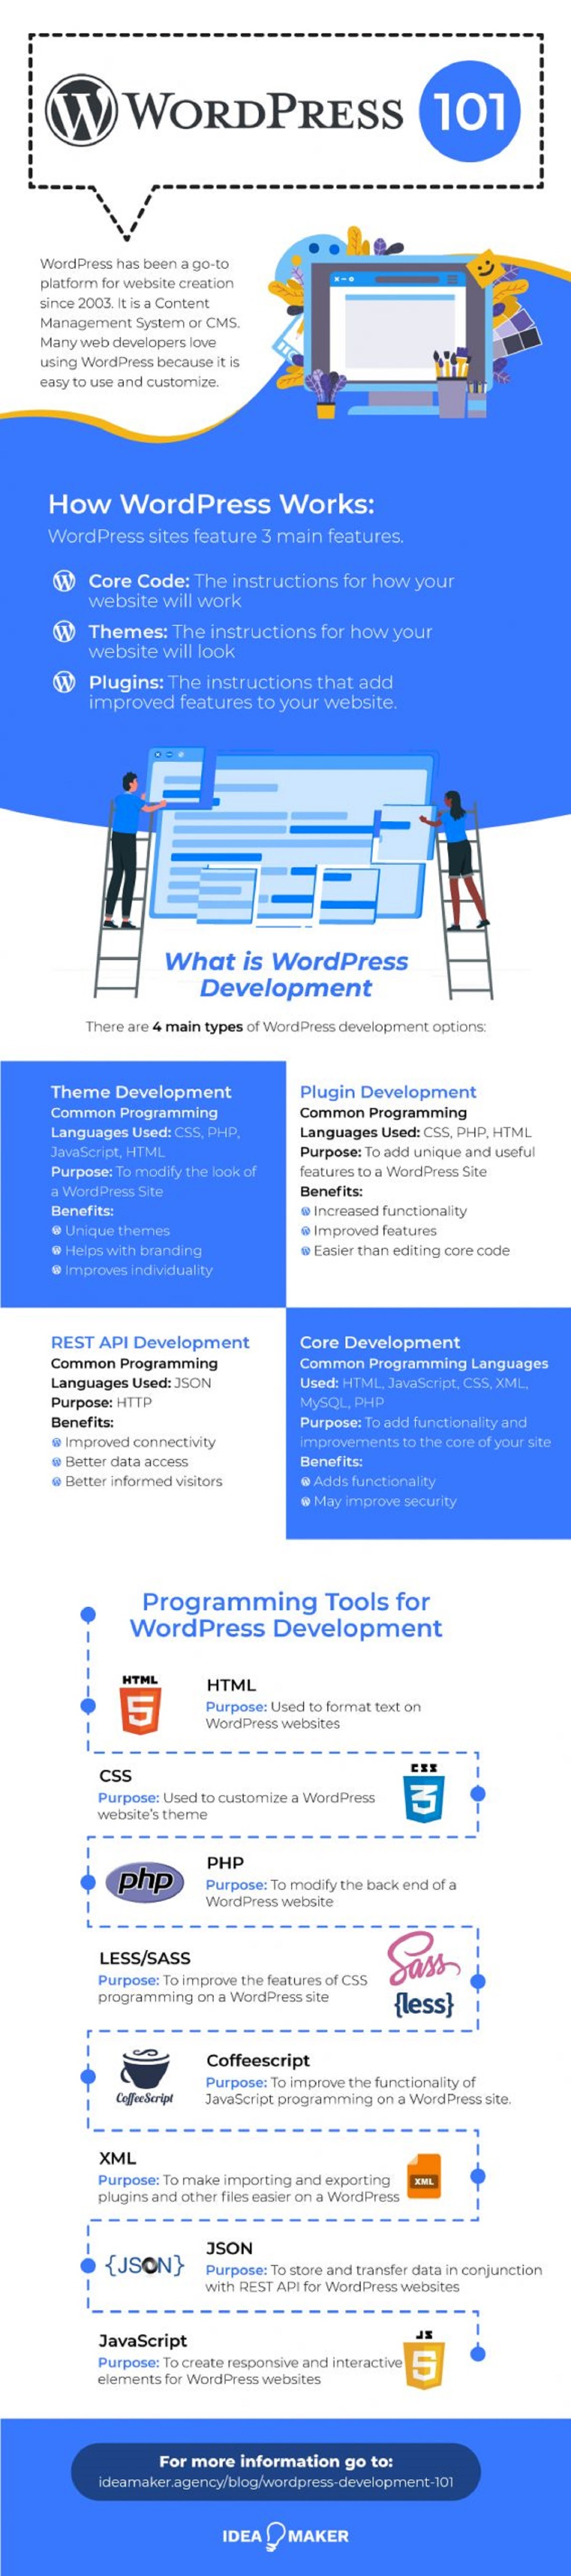 everything-you-need-to-know-about-wordpress-development-infographic